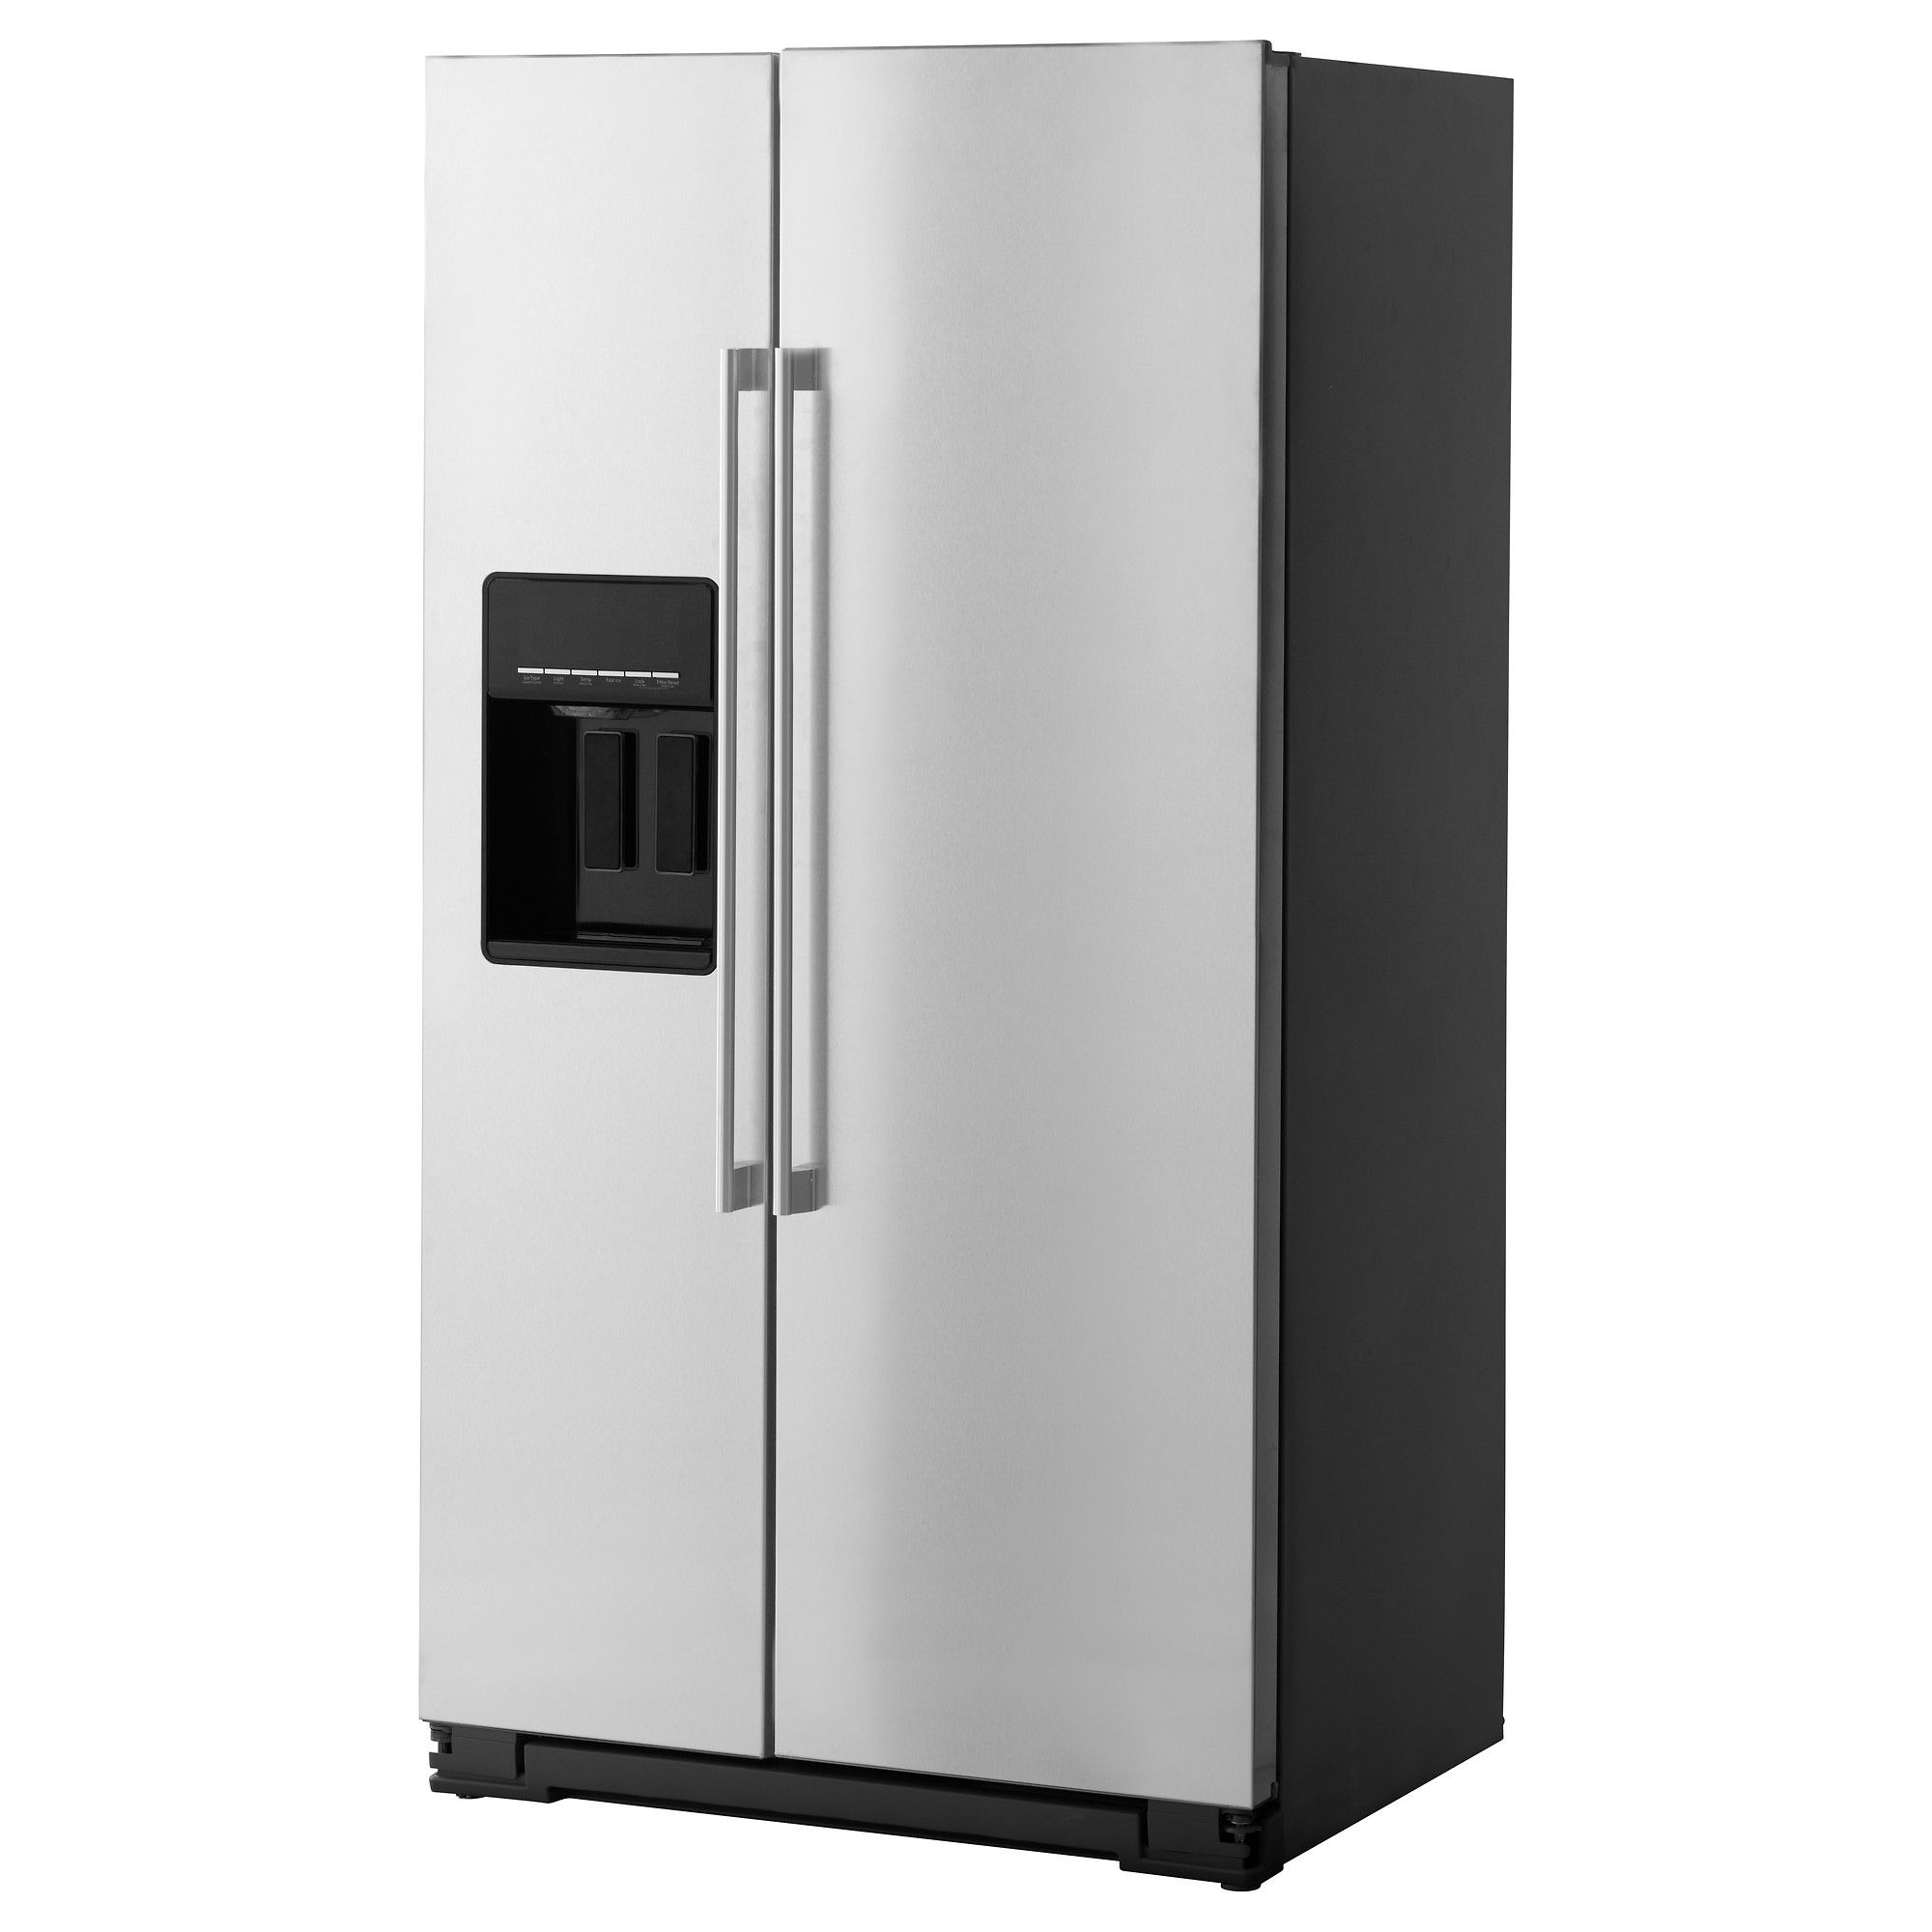 NUTID S23 Refrigerator freezer IKEA possibility may need wider